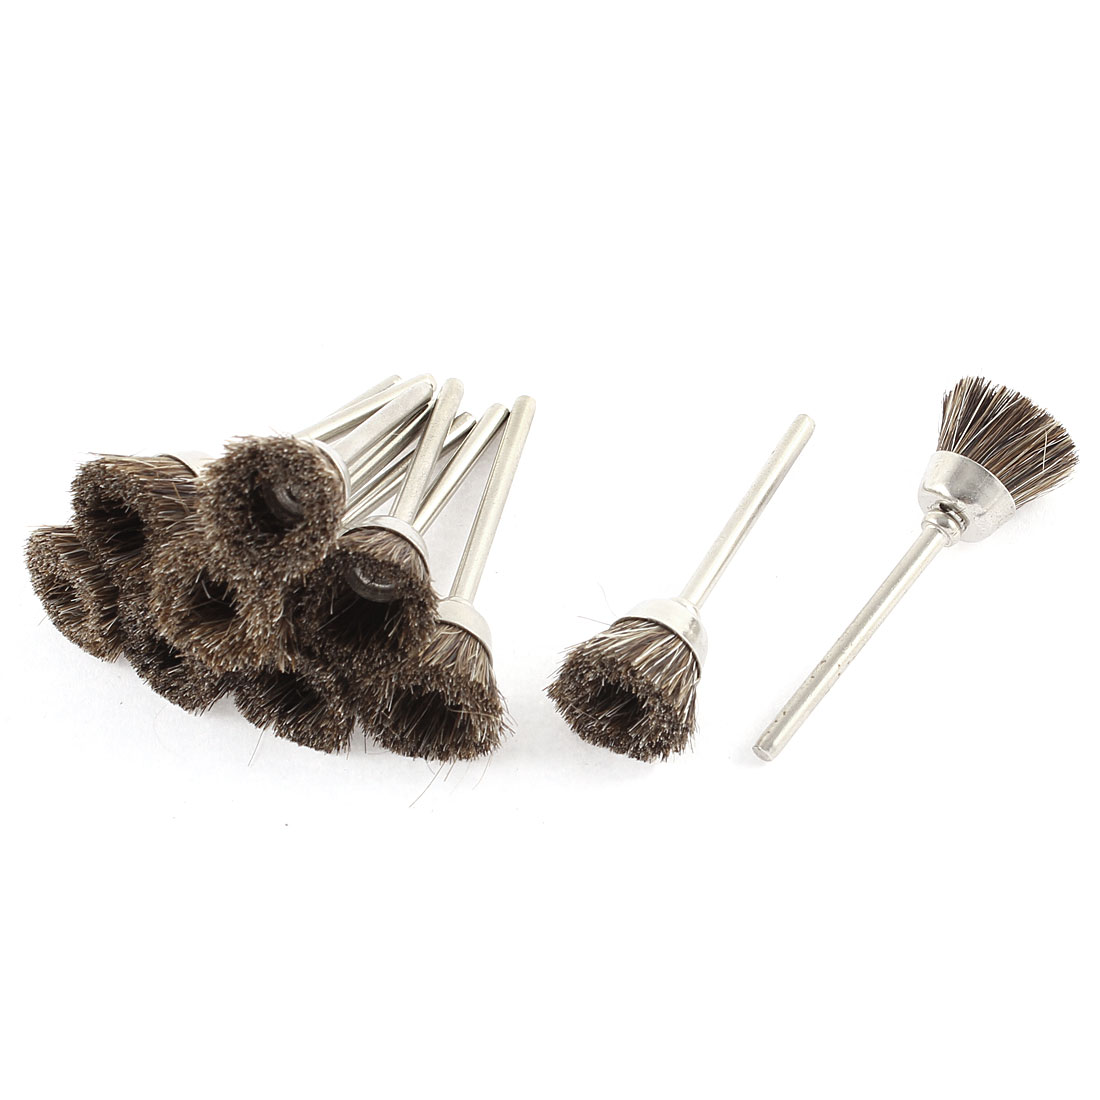 15mm Dia Nylon Head Polishing Brushes Jewelry Cleaning Buffing Tools 10pcs